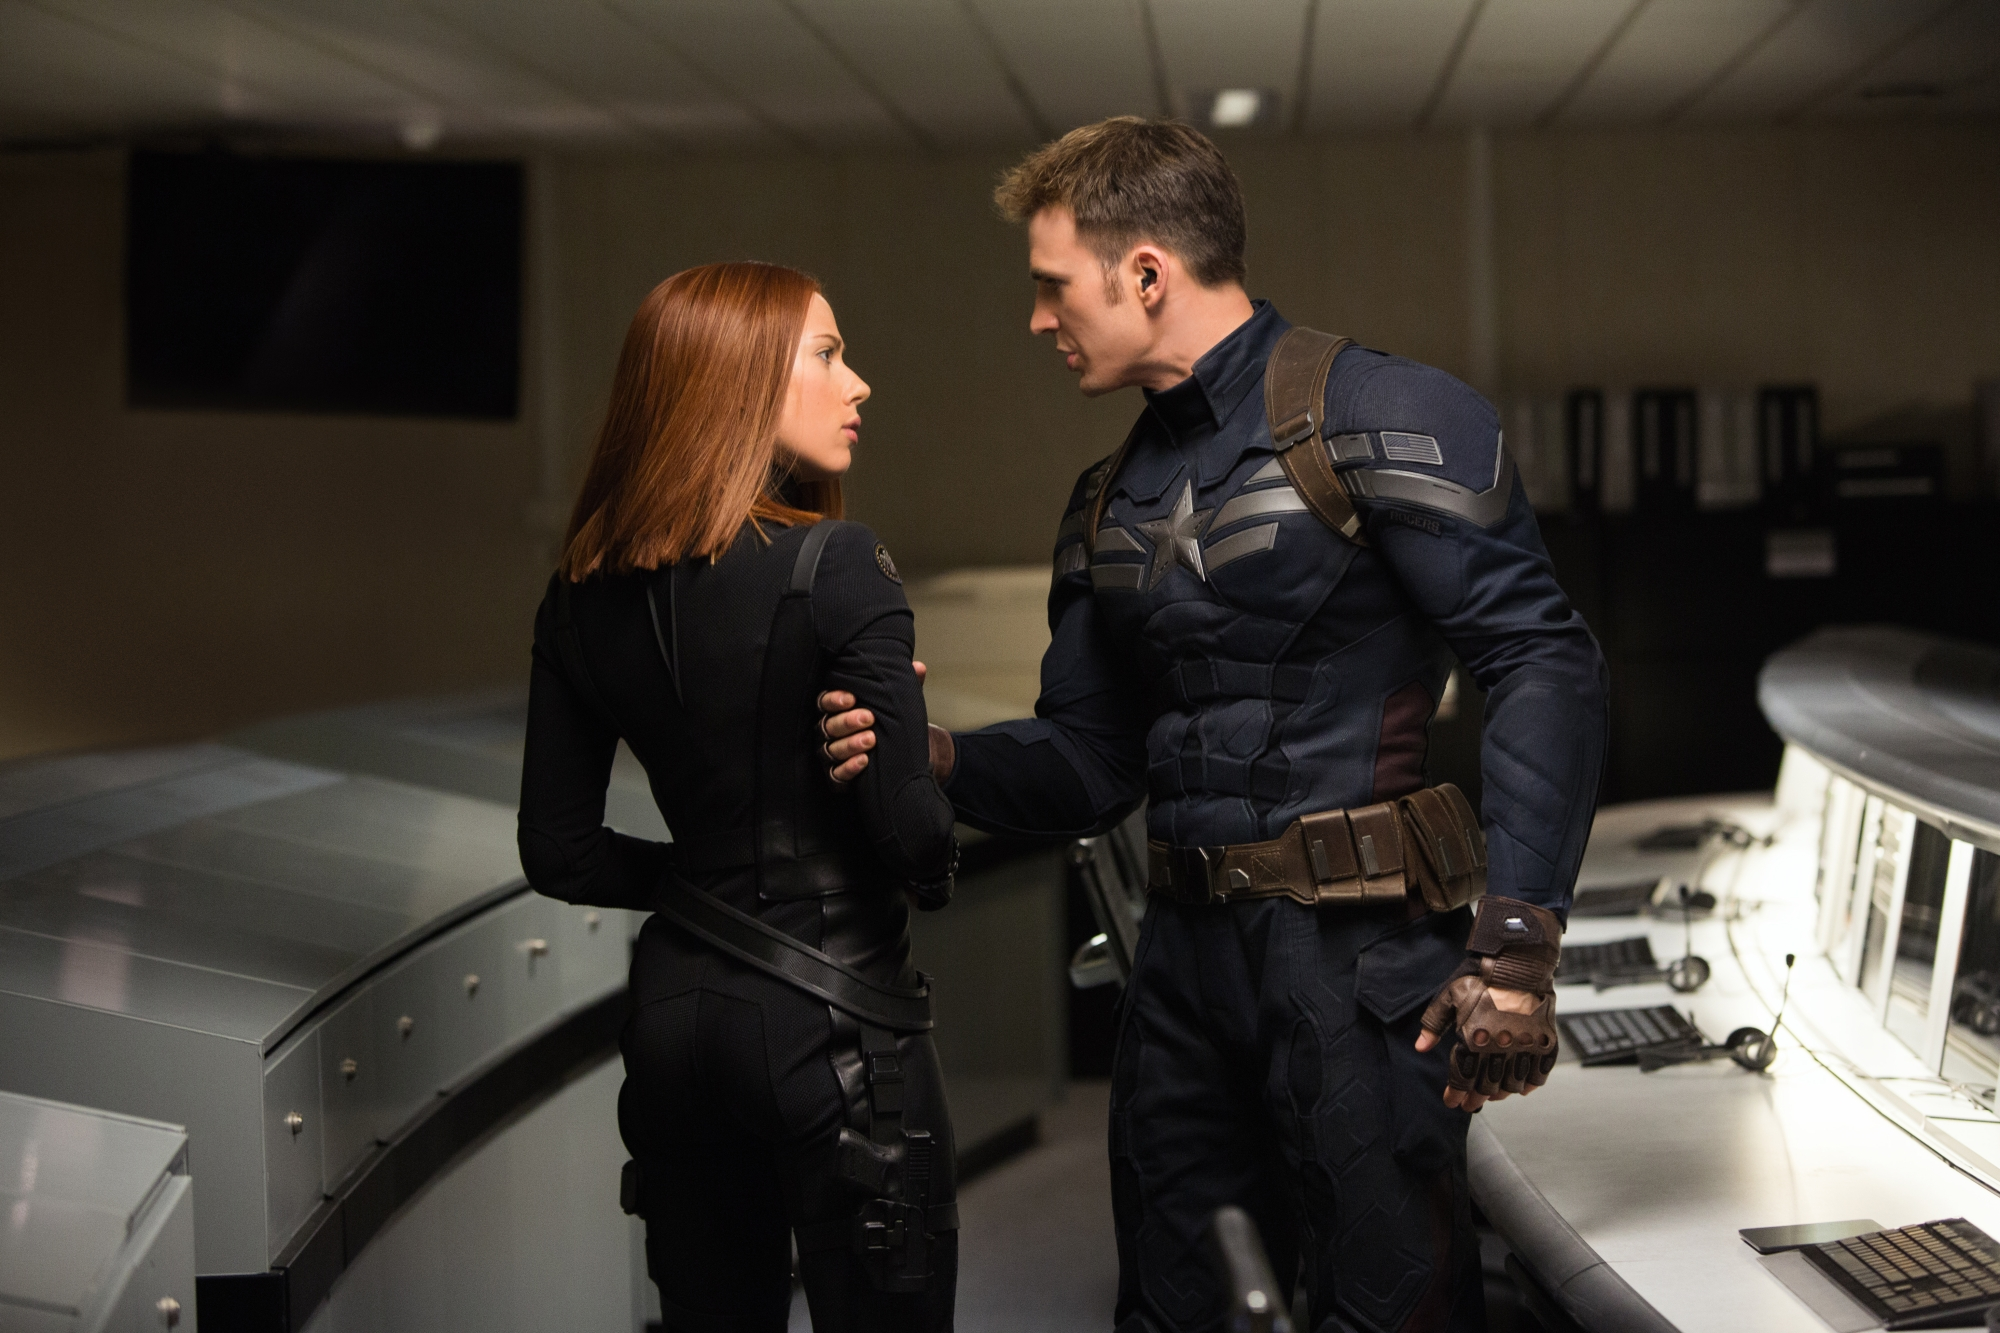 captain-america-the-winter-soldier-scarlett-johansson-chris-evans.jpg